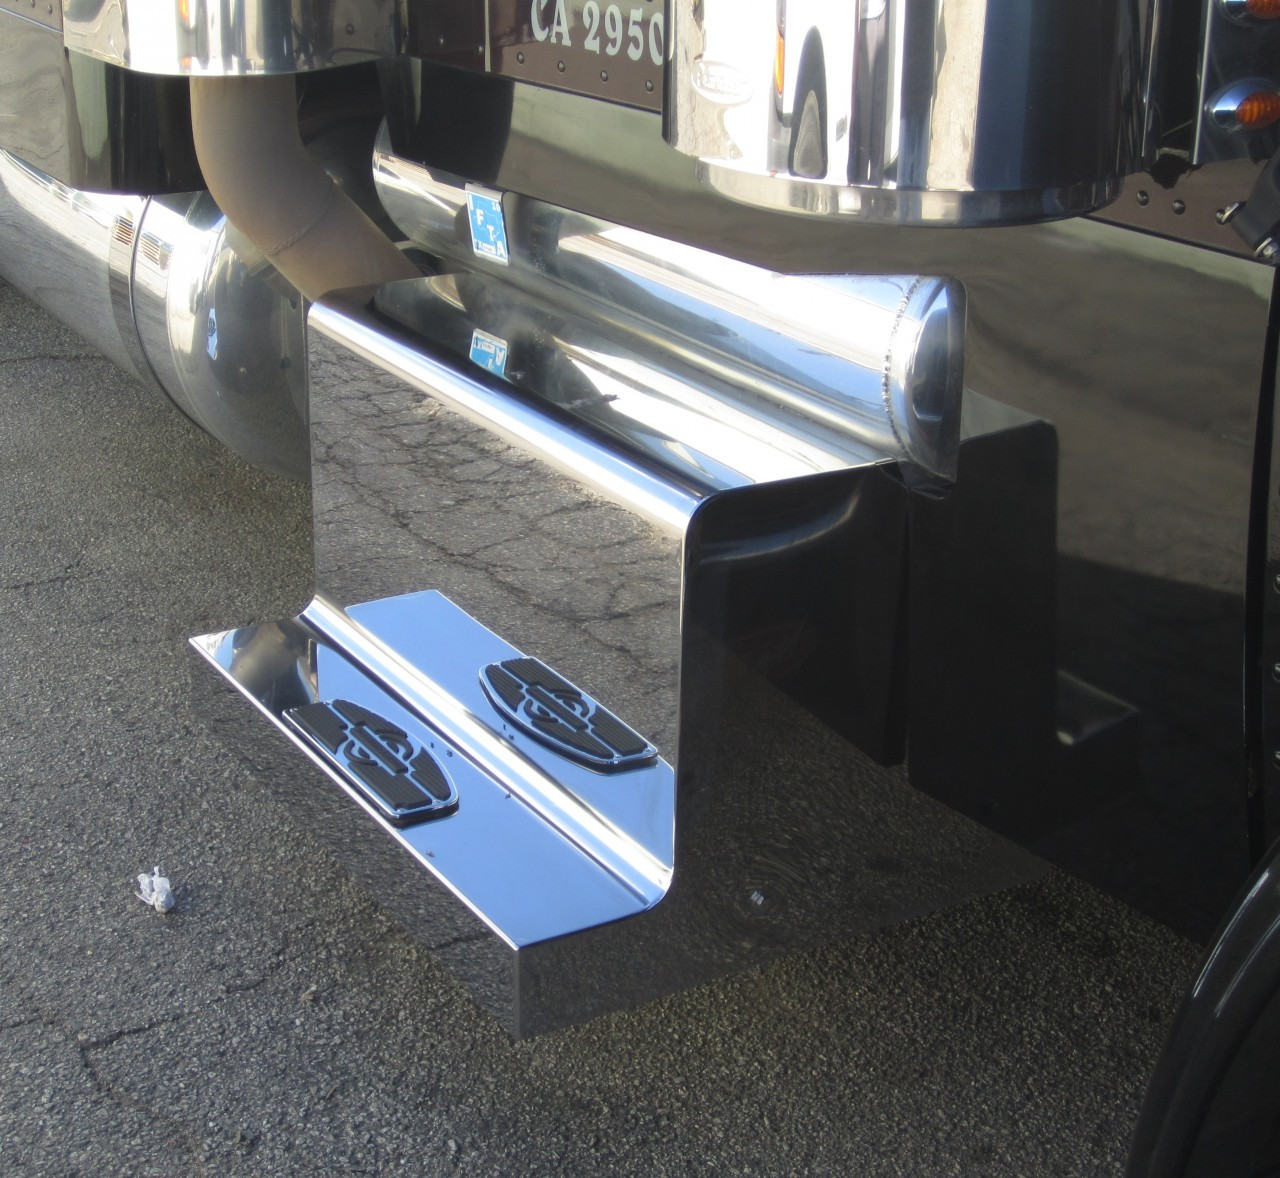 cost of trailer home with Peterbilt 389 4 Step Stainless Steel Monster Box Lid Cover on Airstream Basec  Trailer 2016 9 in addition 921 lc 1980 Construction machine Caterpillar digger likewise Pyro Mini Fireshooter likewise Shimano Orca Sinking Pencil Lures further Loading Dock Design.